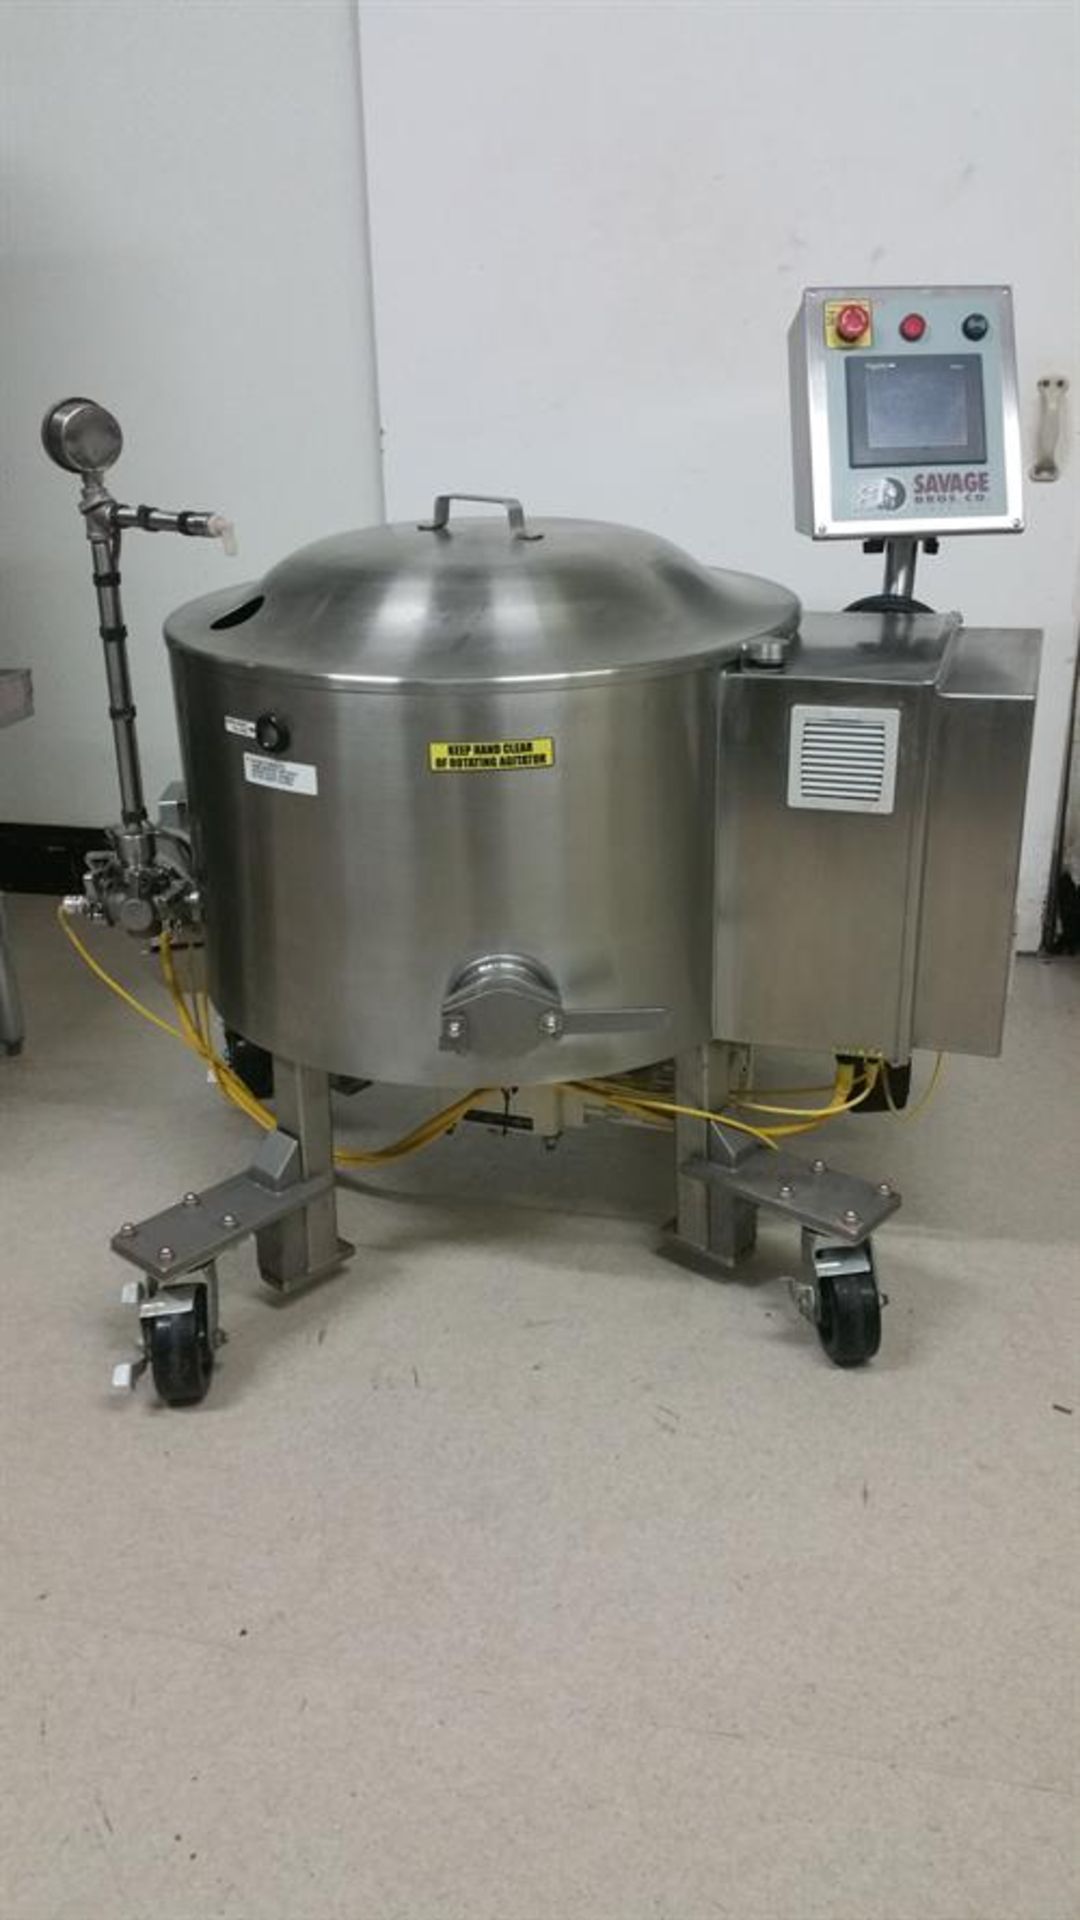 Savage 300-lb Stainless Steel Auto tempering Melter with Metering Pump - All stainless steel - Water